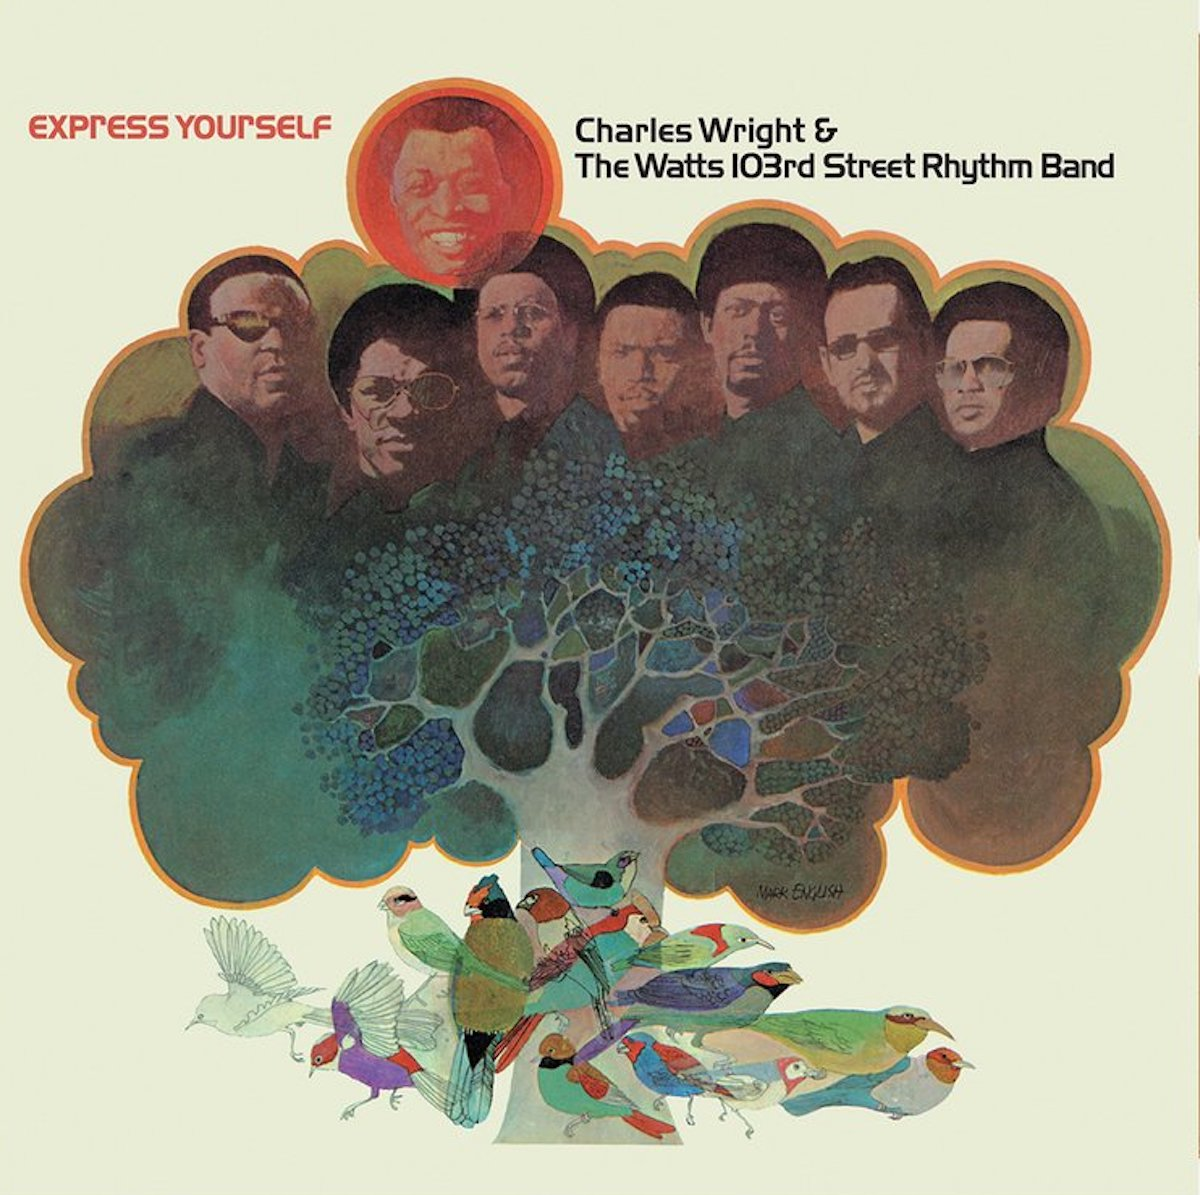 express yourself album cover by charles wright